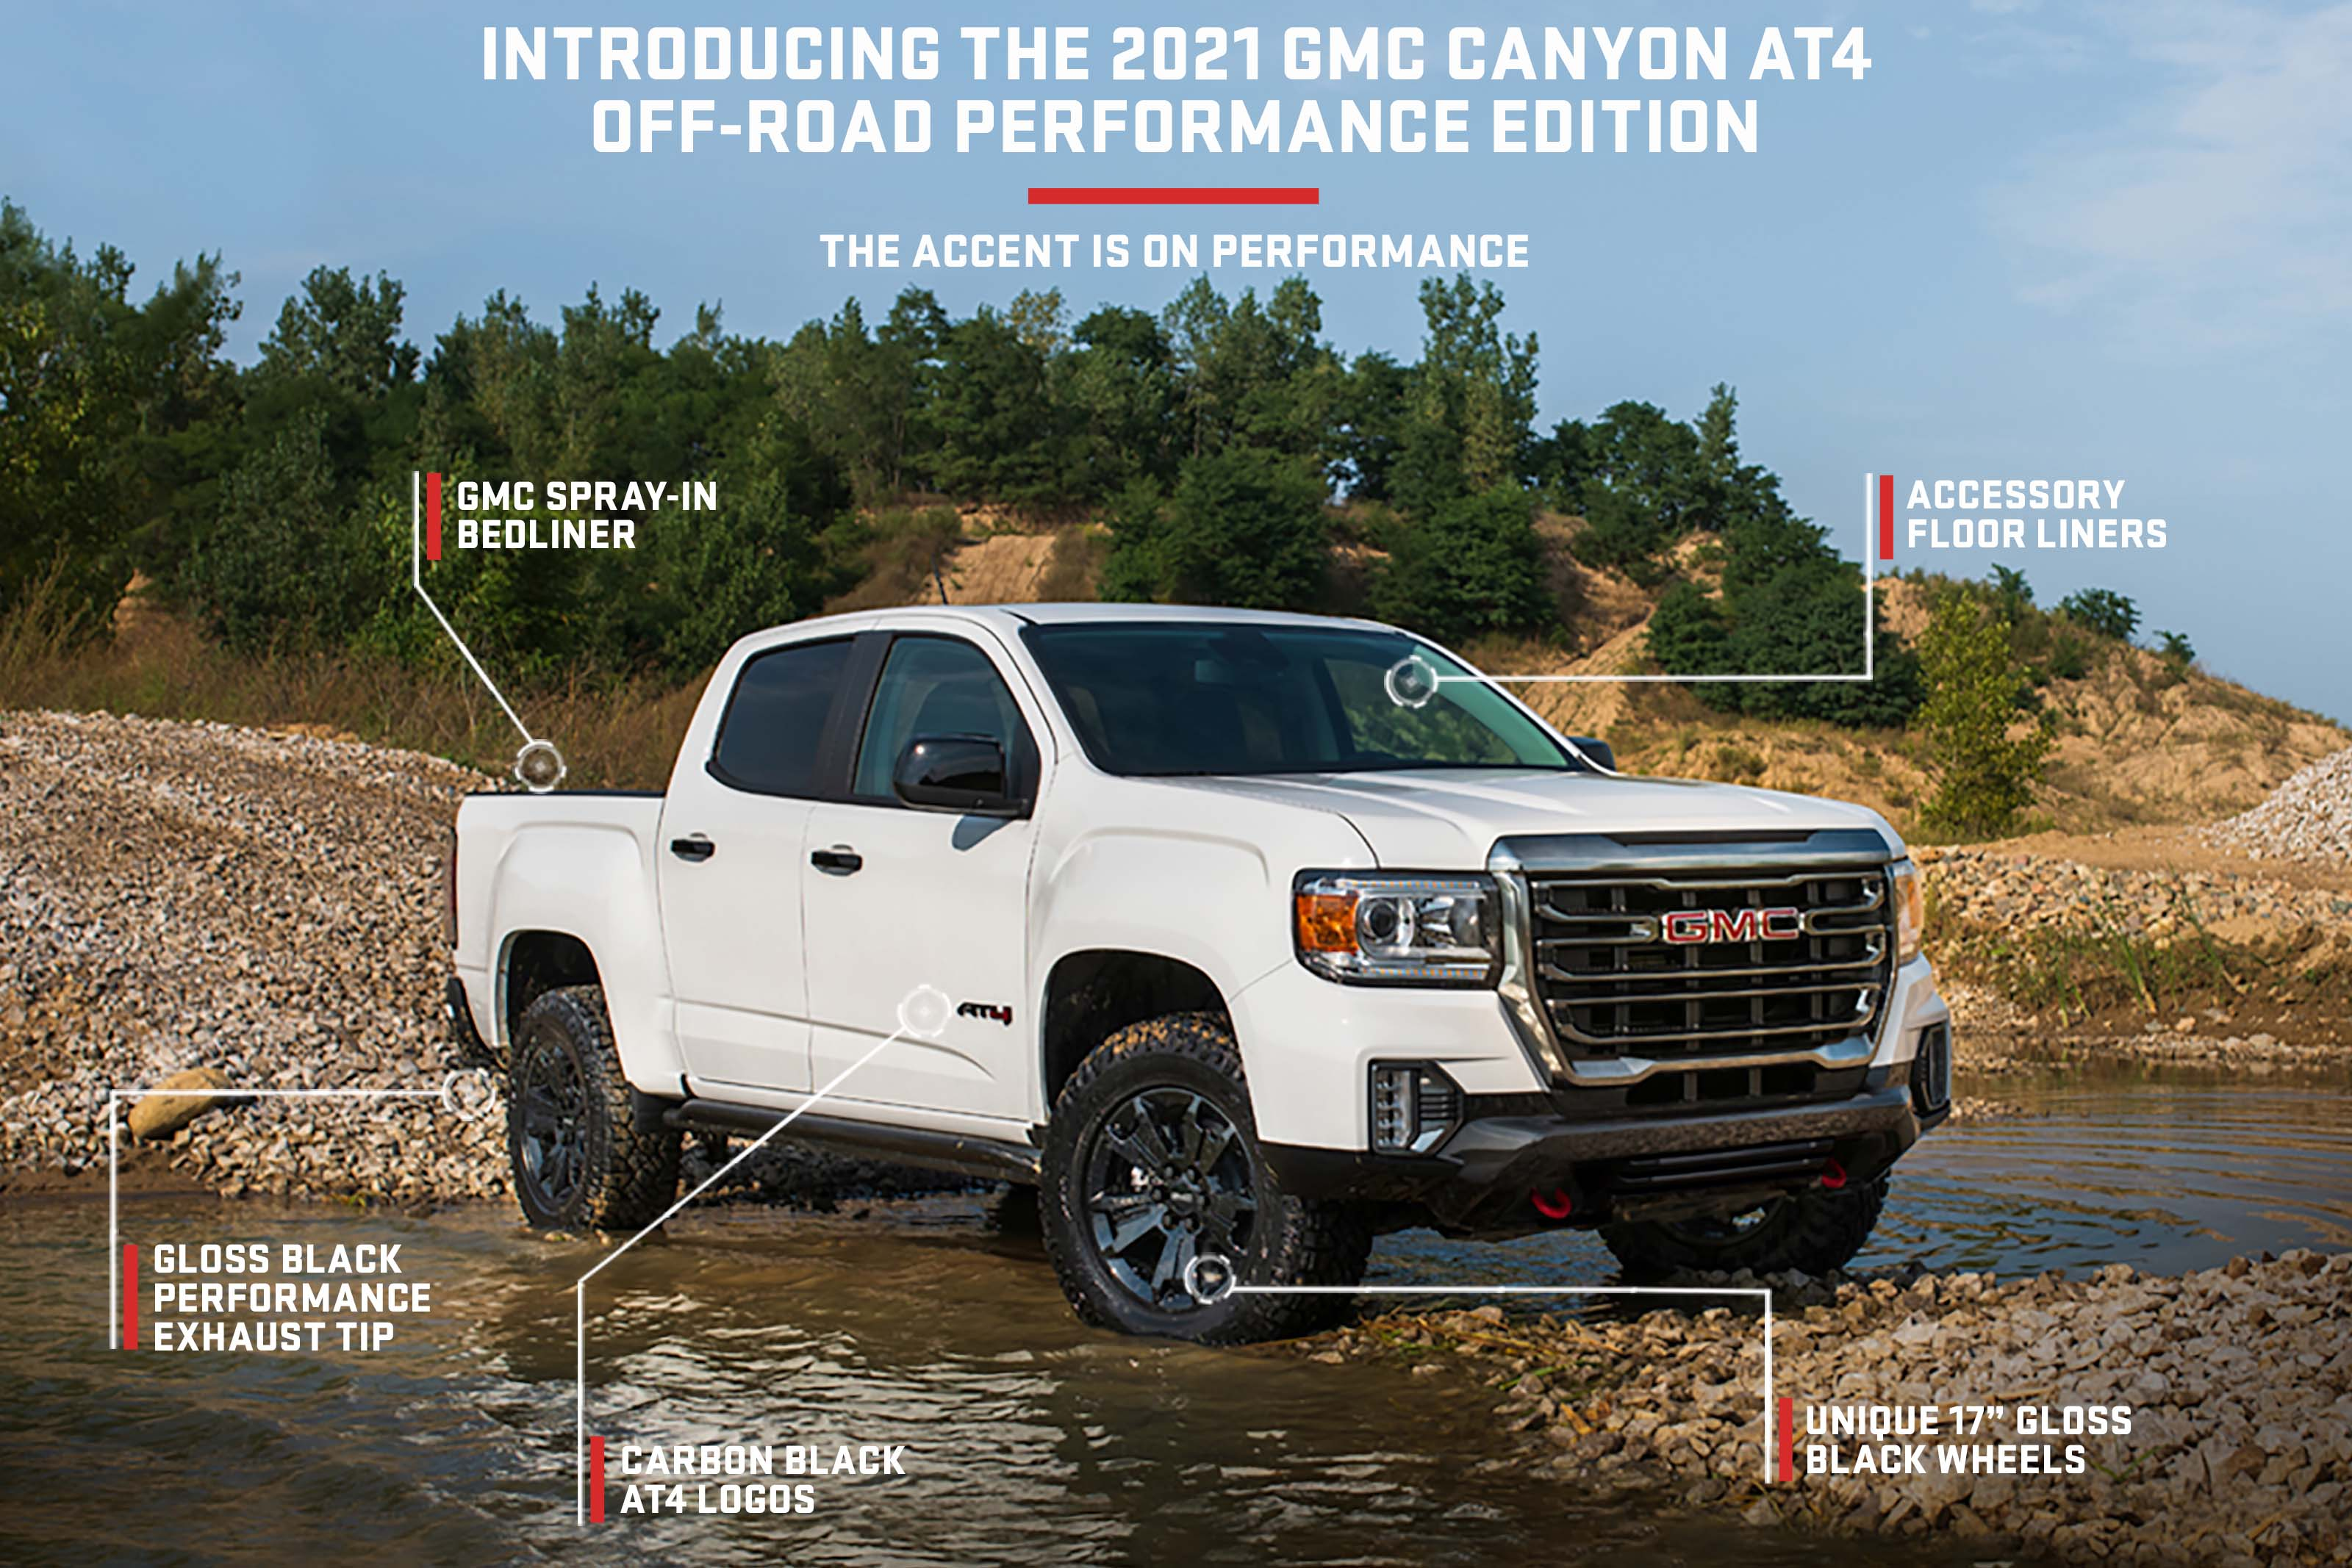 New 2021 Gmc Canyon At4 Off Road Performance Edition Package Announced